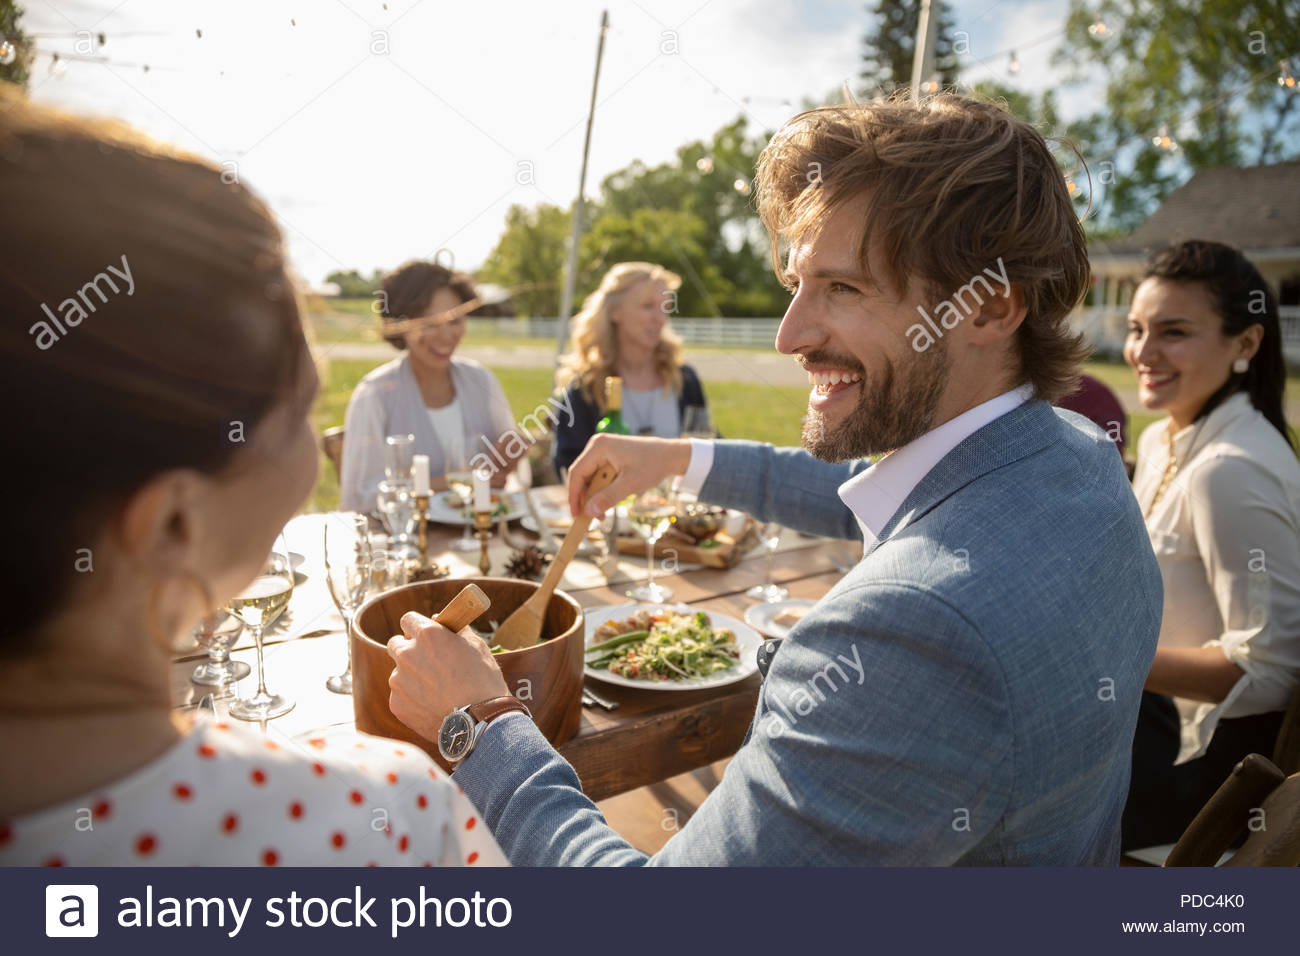 Smiling man serving salad at wedding reception lunch at sunny rural table - Stock Image